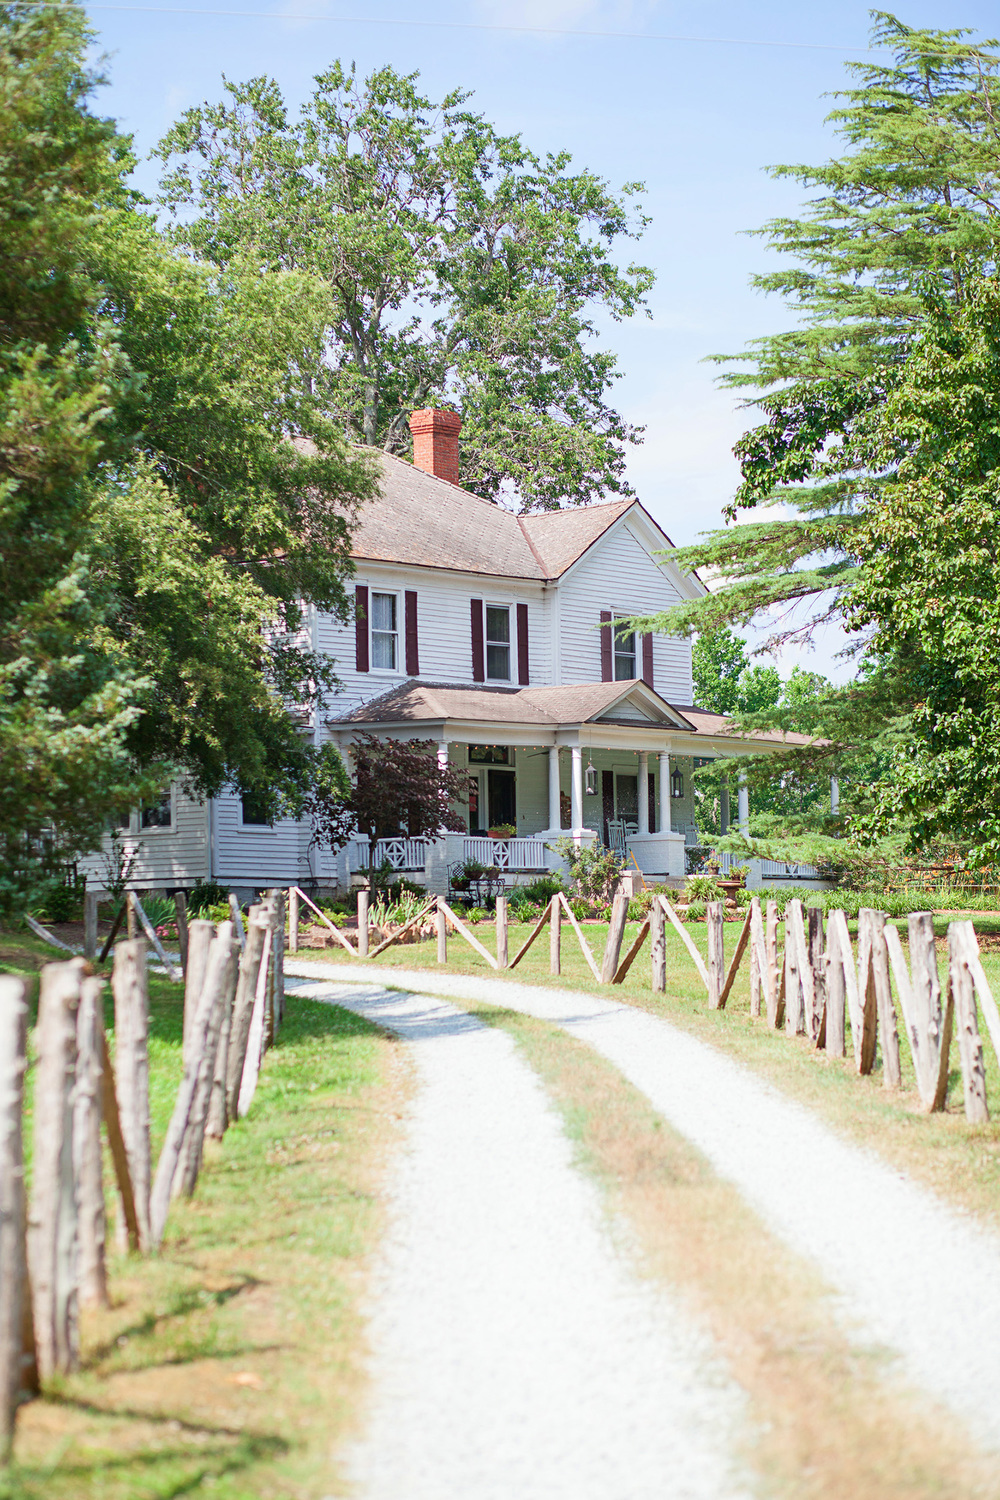 Farmhouse at Elodie Farms